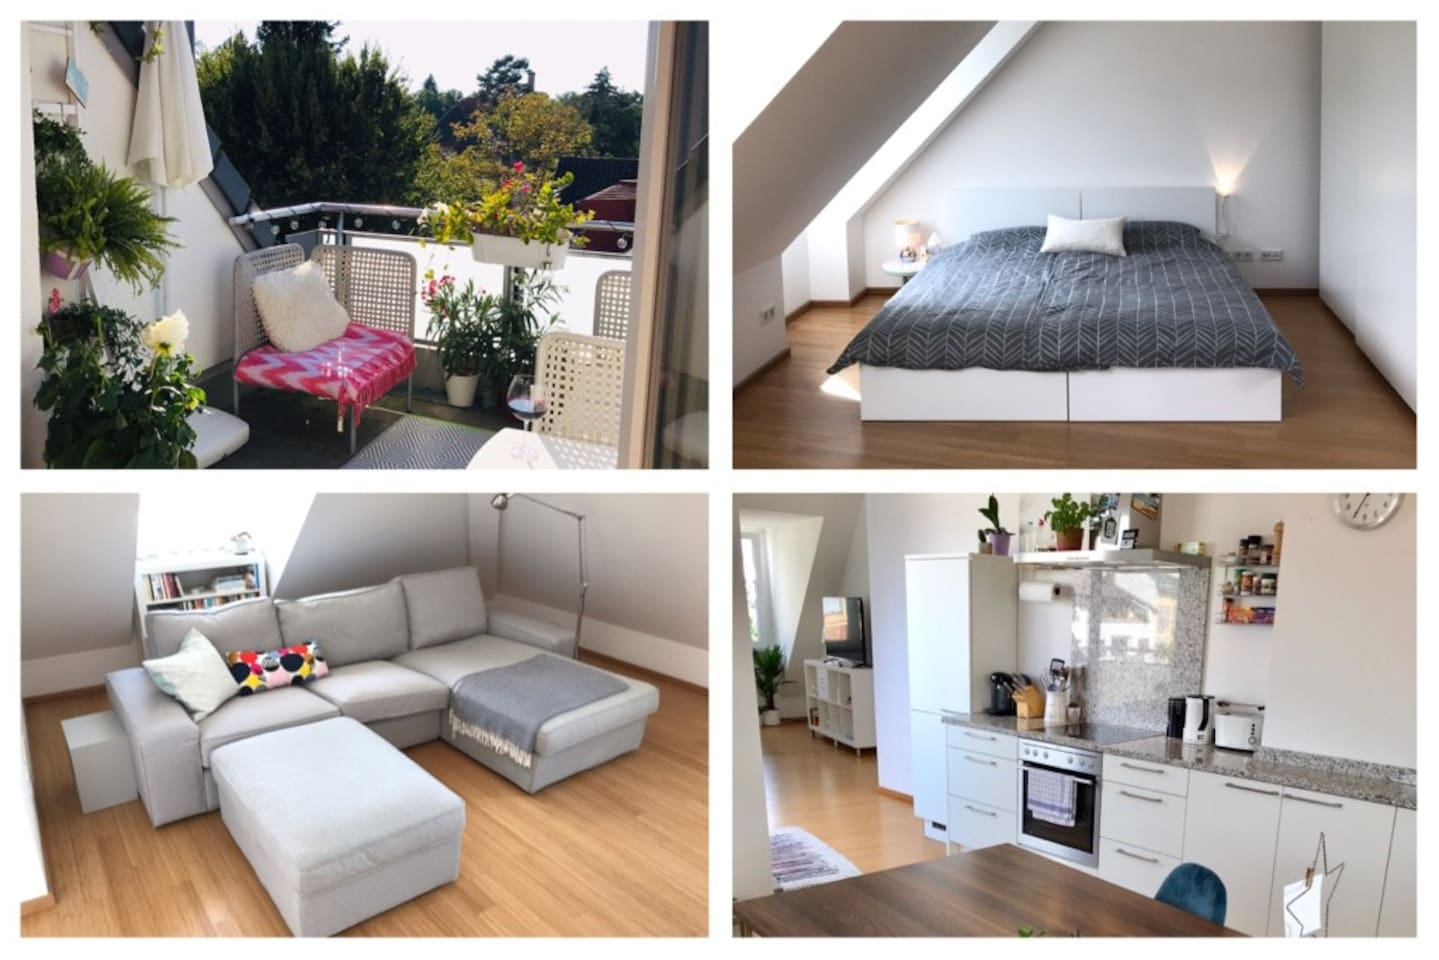 Cozy flat 66qm, private bathroom, bedroom, big kitchen and living room, including sunny and charming balcony :)